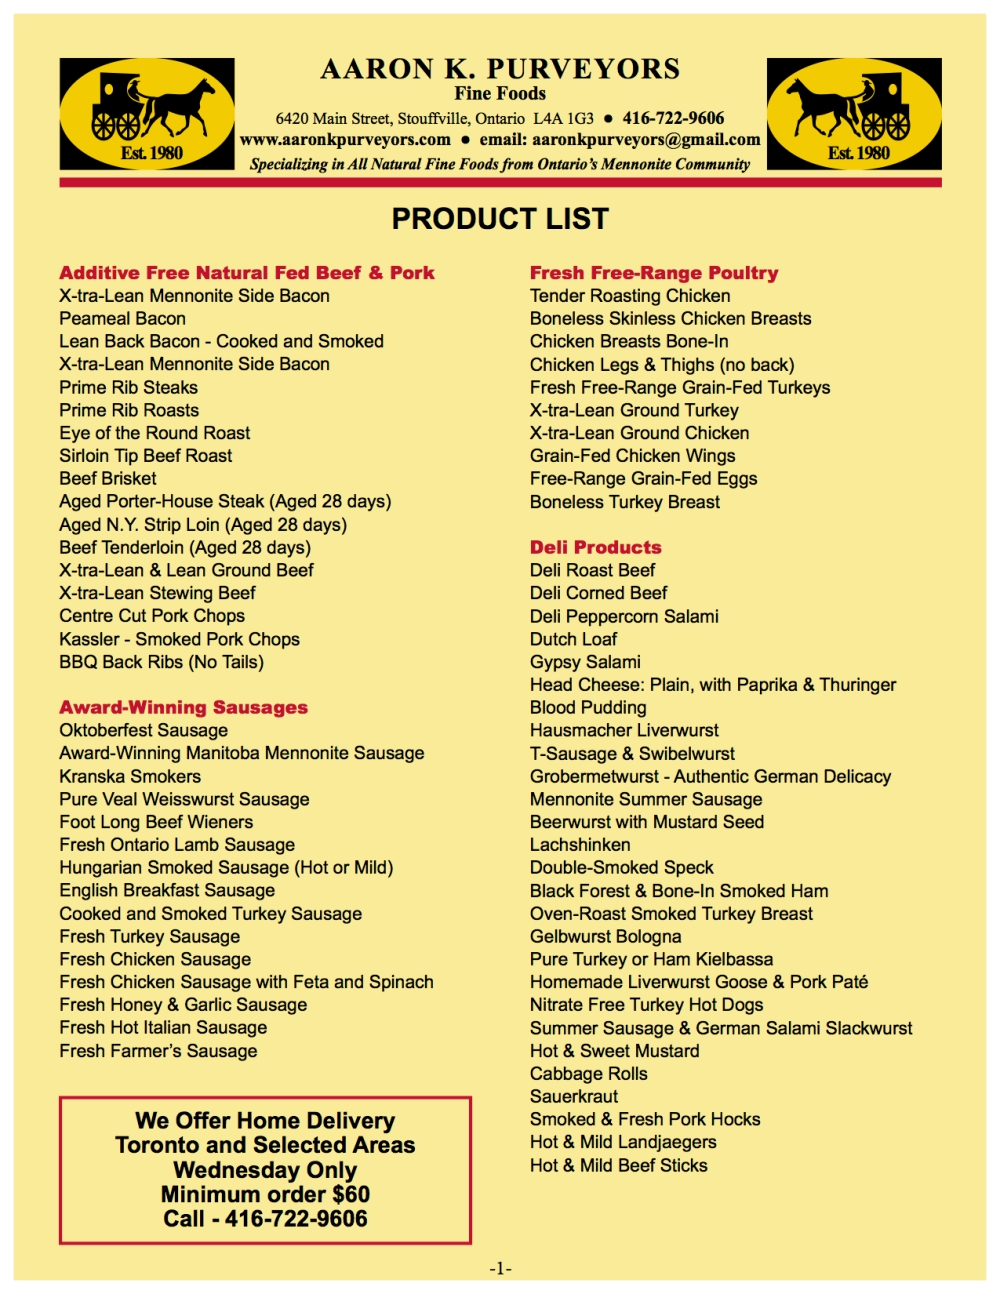 aaron-k-purveyors-product-list-2017